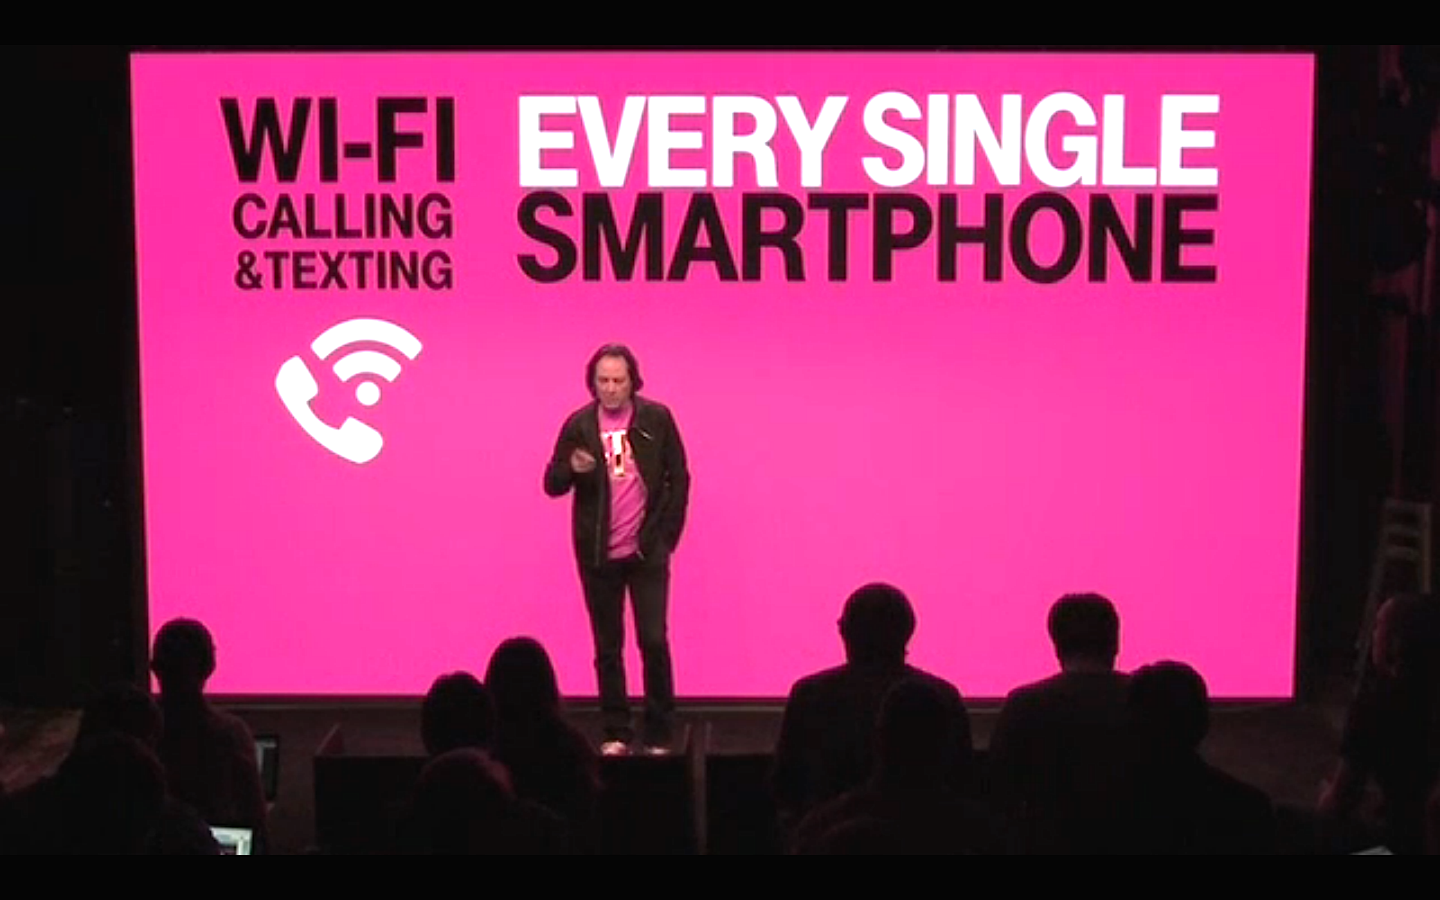 T-Mobile Uncarrier 7 0: WiFi Calling gets an overhaul, free